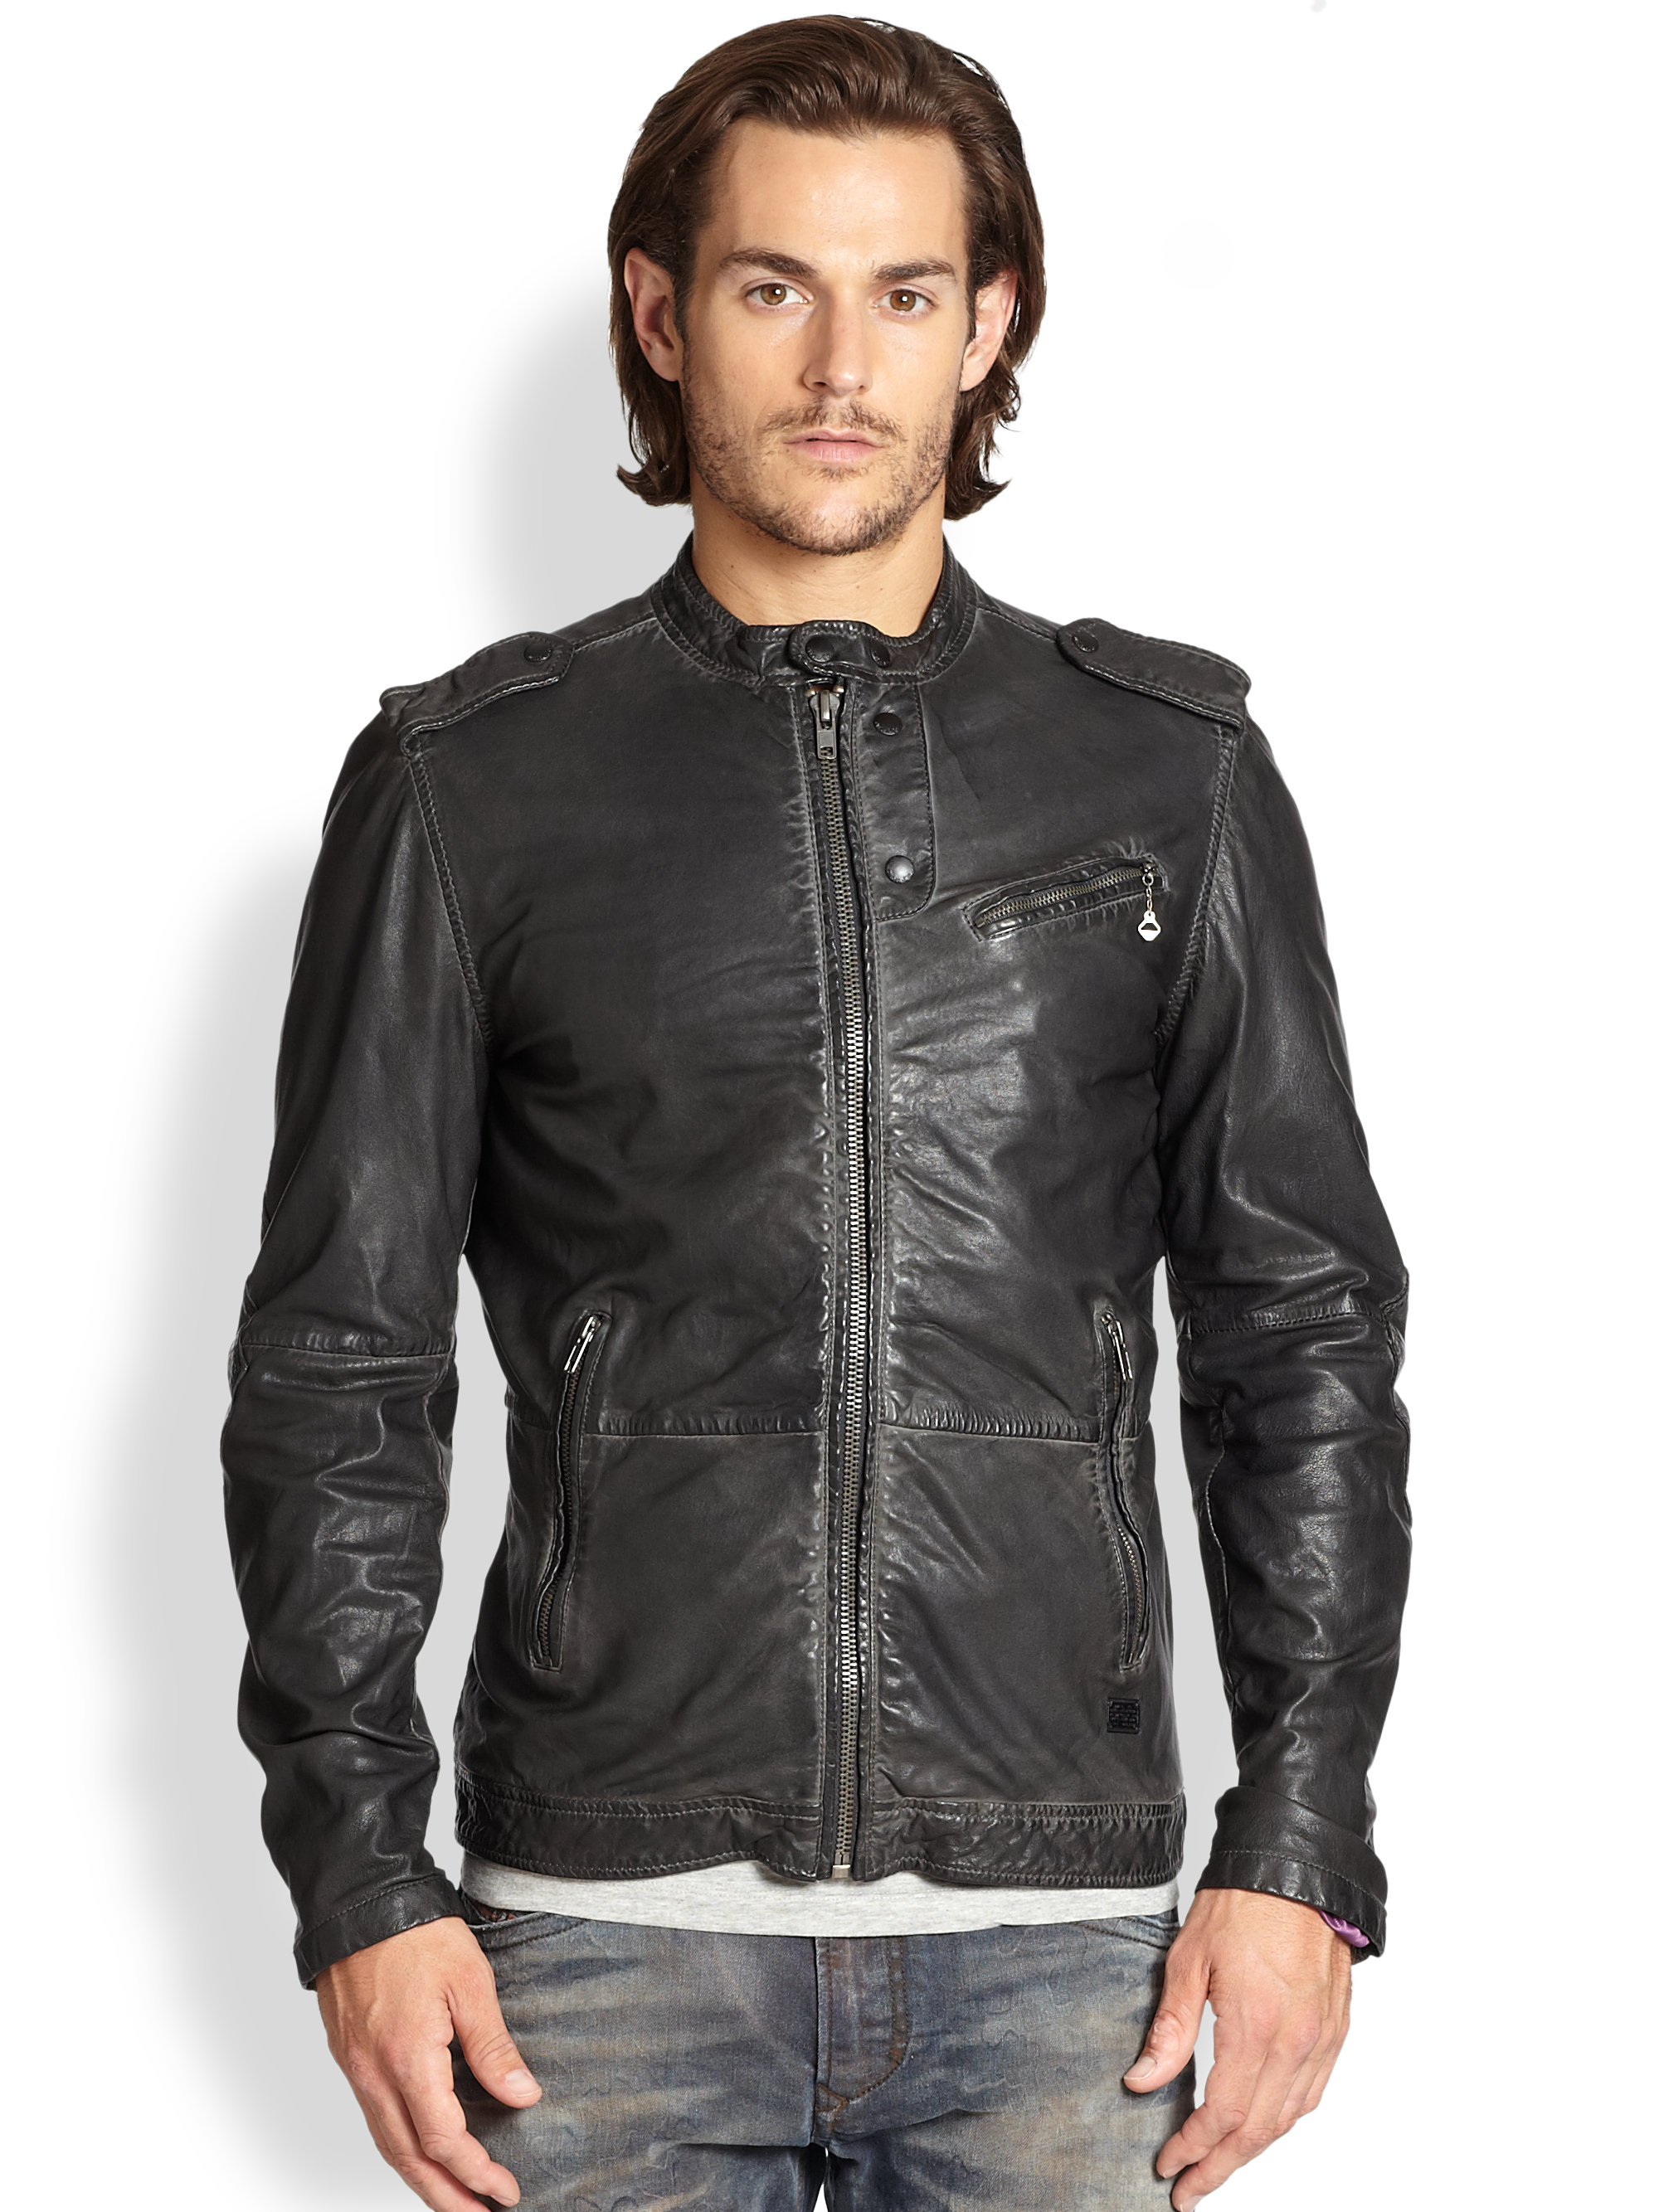 Diesel distressed leather jacket – Modern fashion jacket photo blog